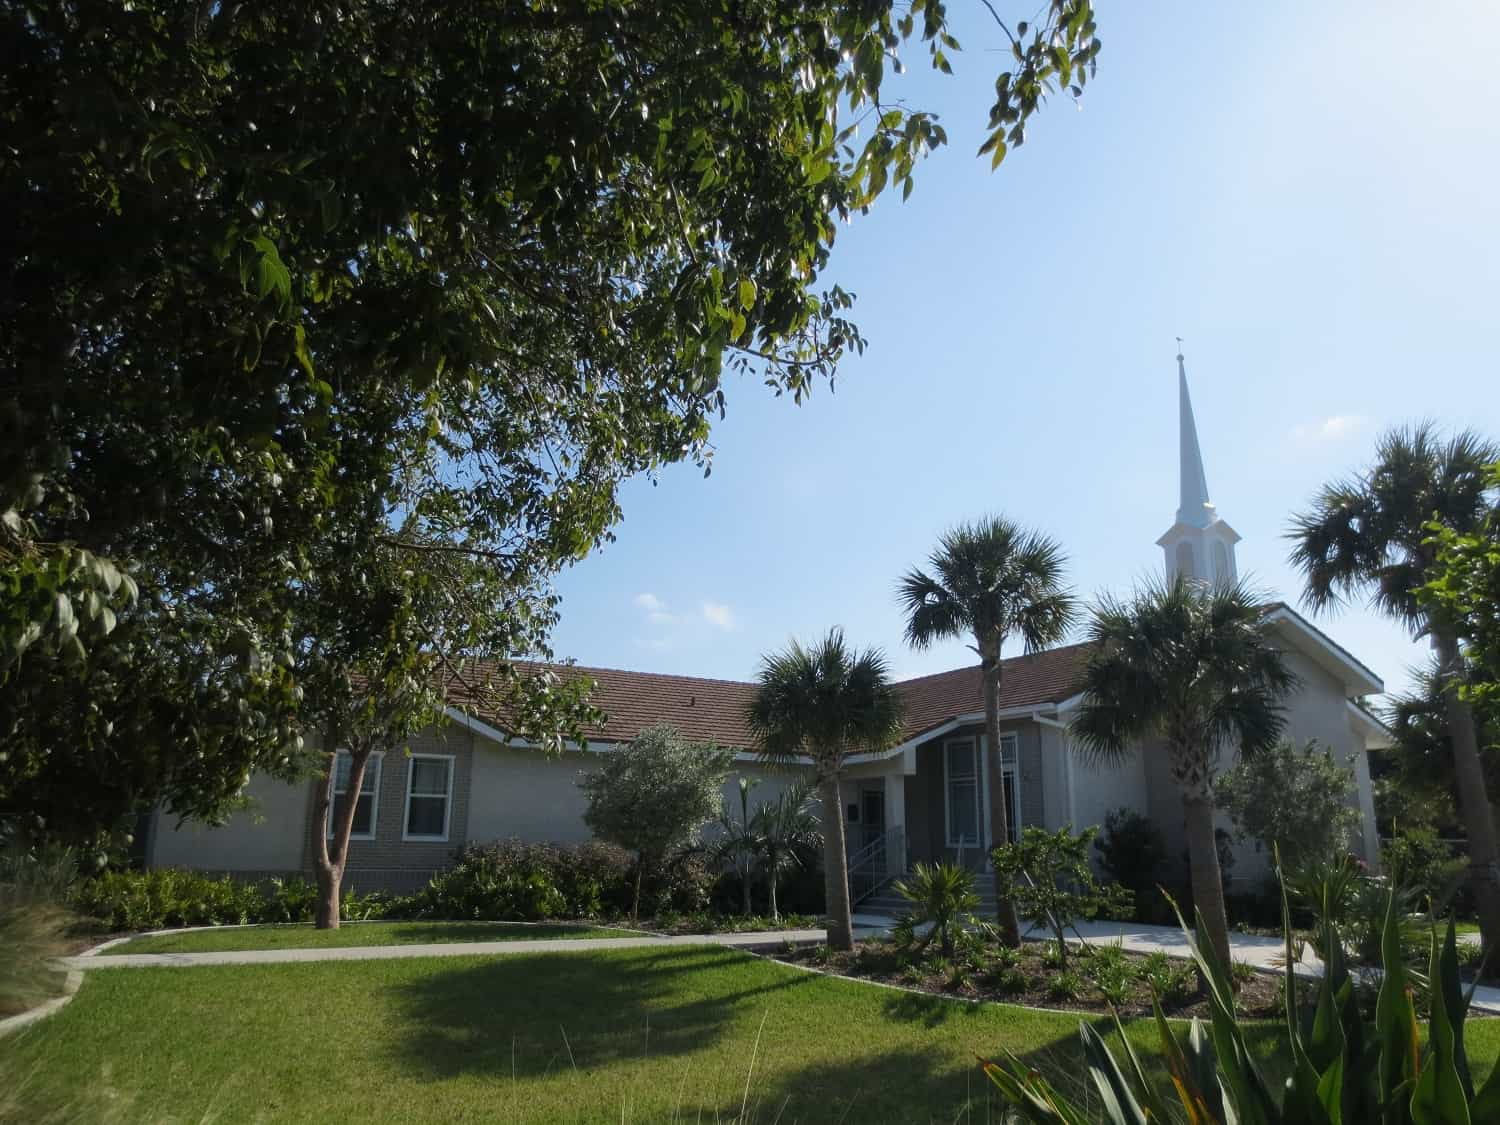 Church of Later Day Saints - Key West